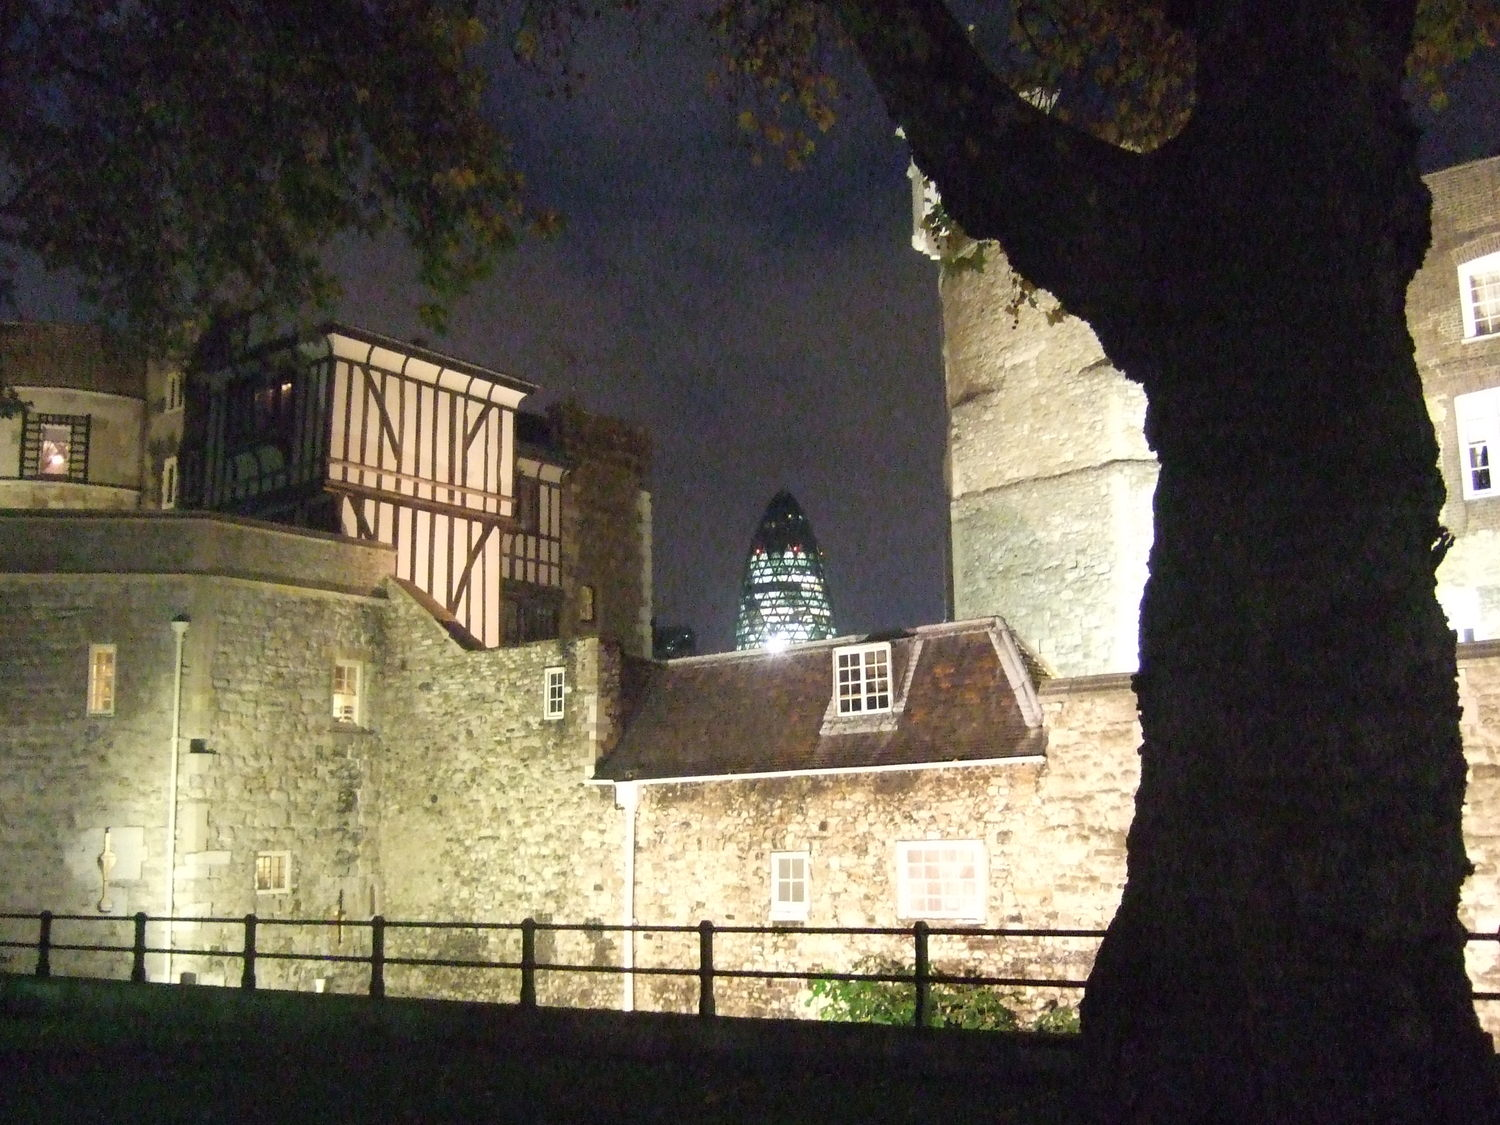 18_Tower_of_London_at_night